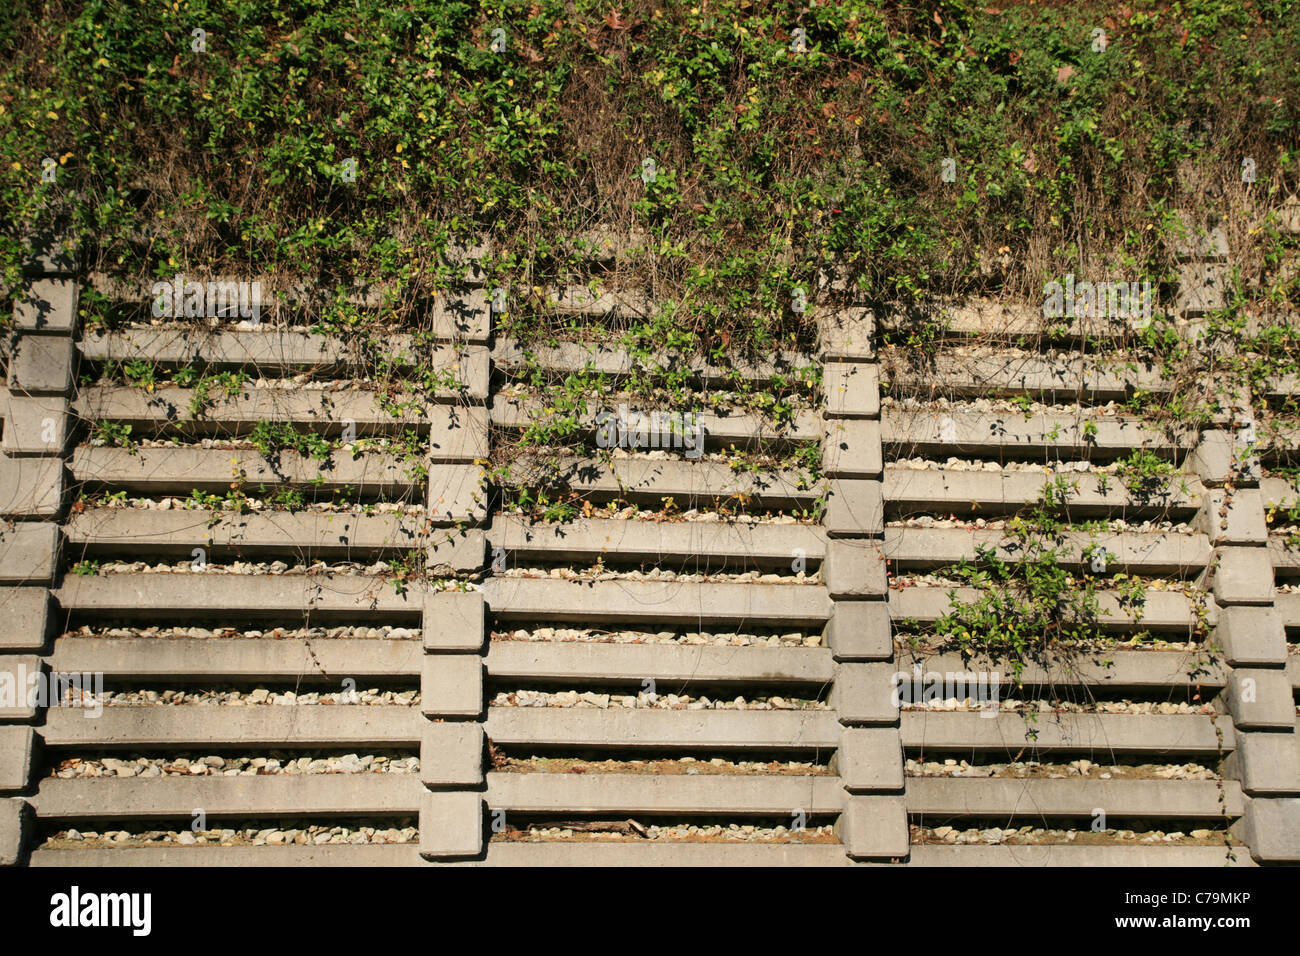 concrete crib retaining wall with vines on the top half - Stock Image